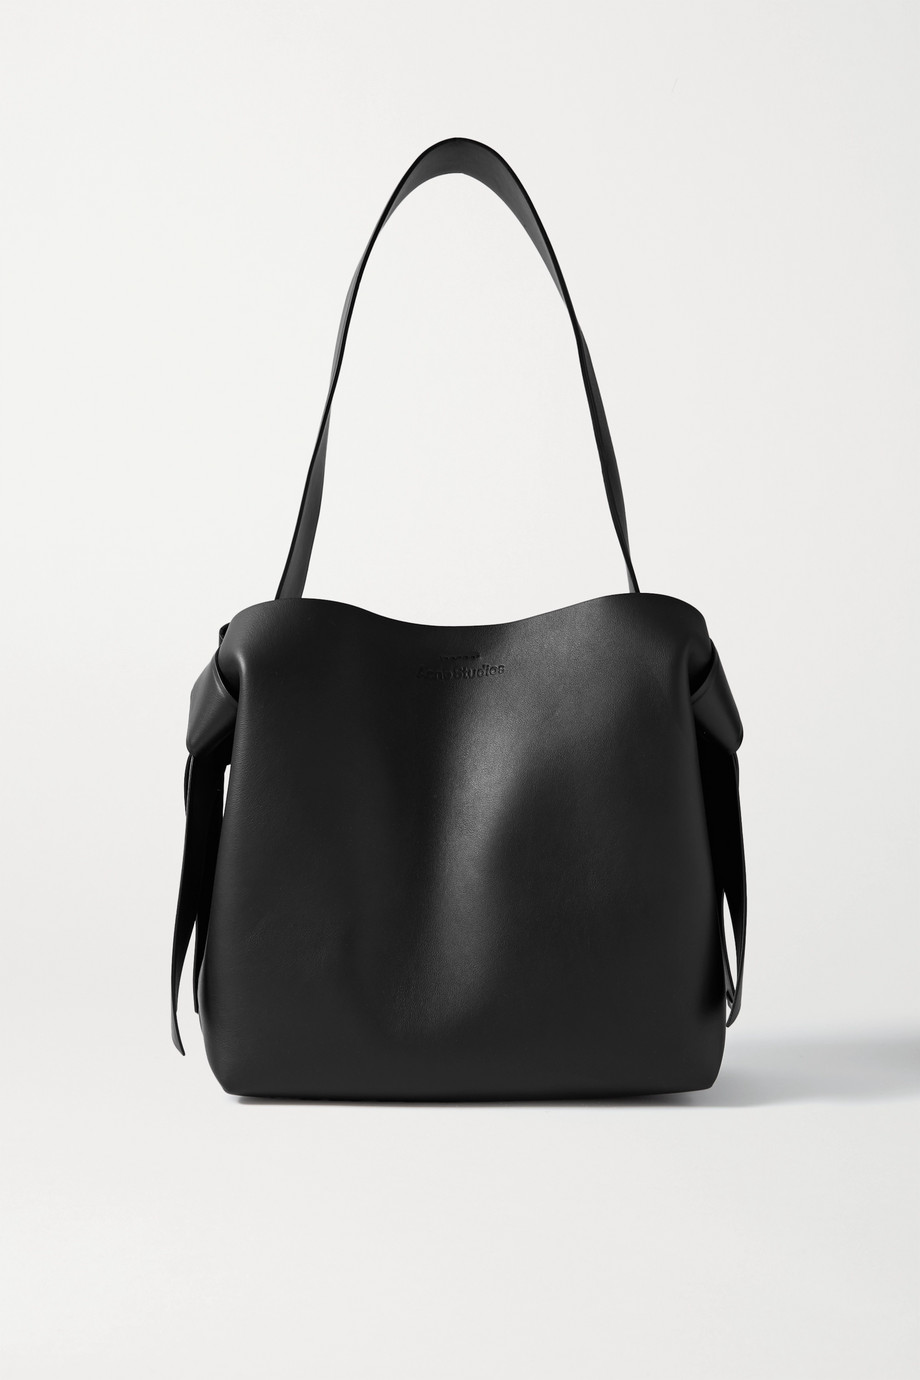 Acne Studios Medium knotted leather shoulder bag